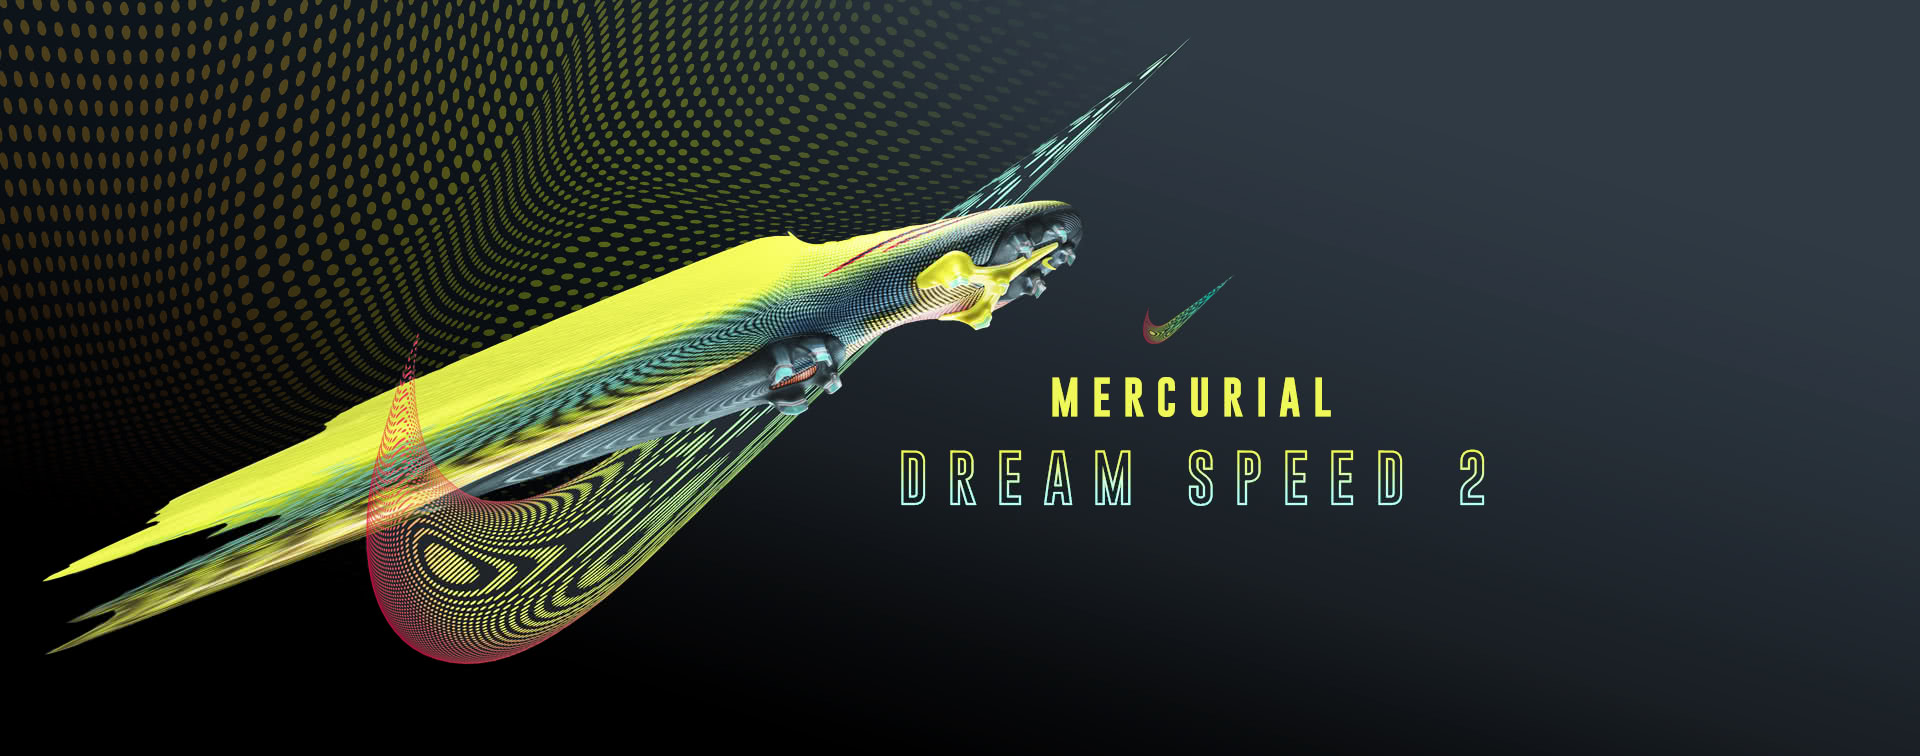 Nike Mercurial Dream Speed 2